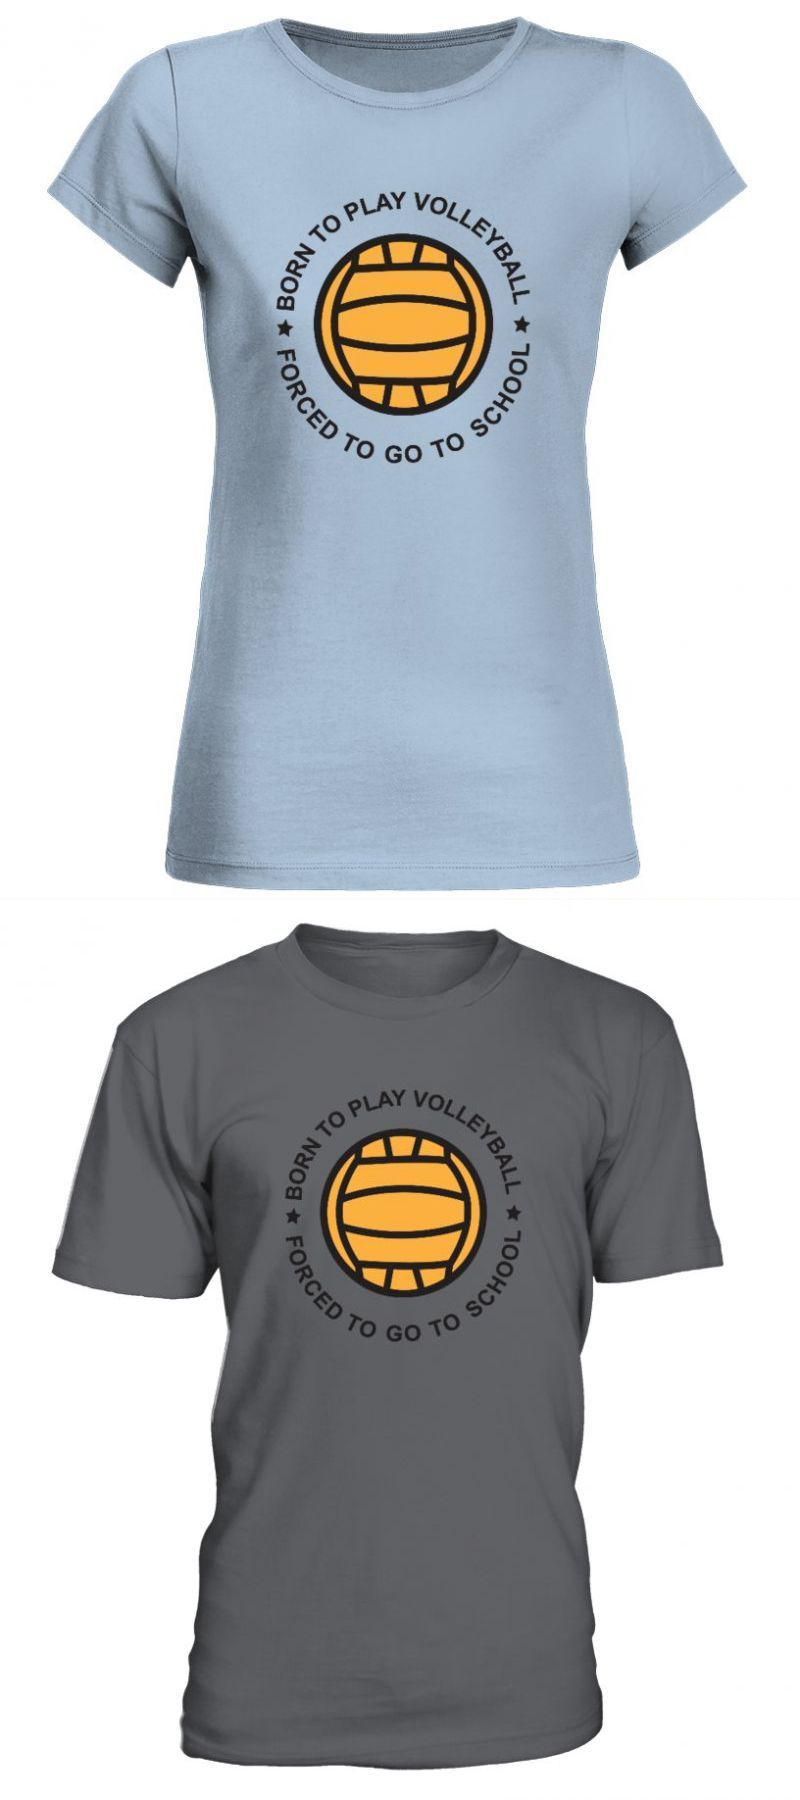 Funny Volleyball T Shirt Sayings Volleyball Florida Volleyball T Shirt Funny Volleyball Shirt Saying Volleyball Tshirts T Shirt Image T Shirts With Sayings